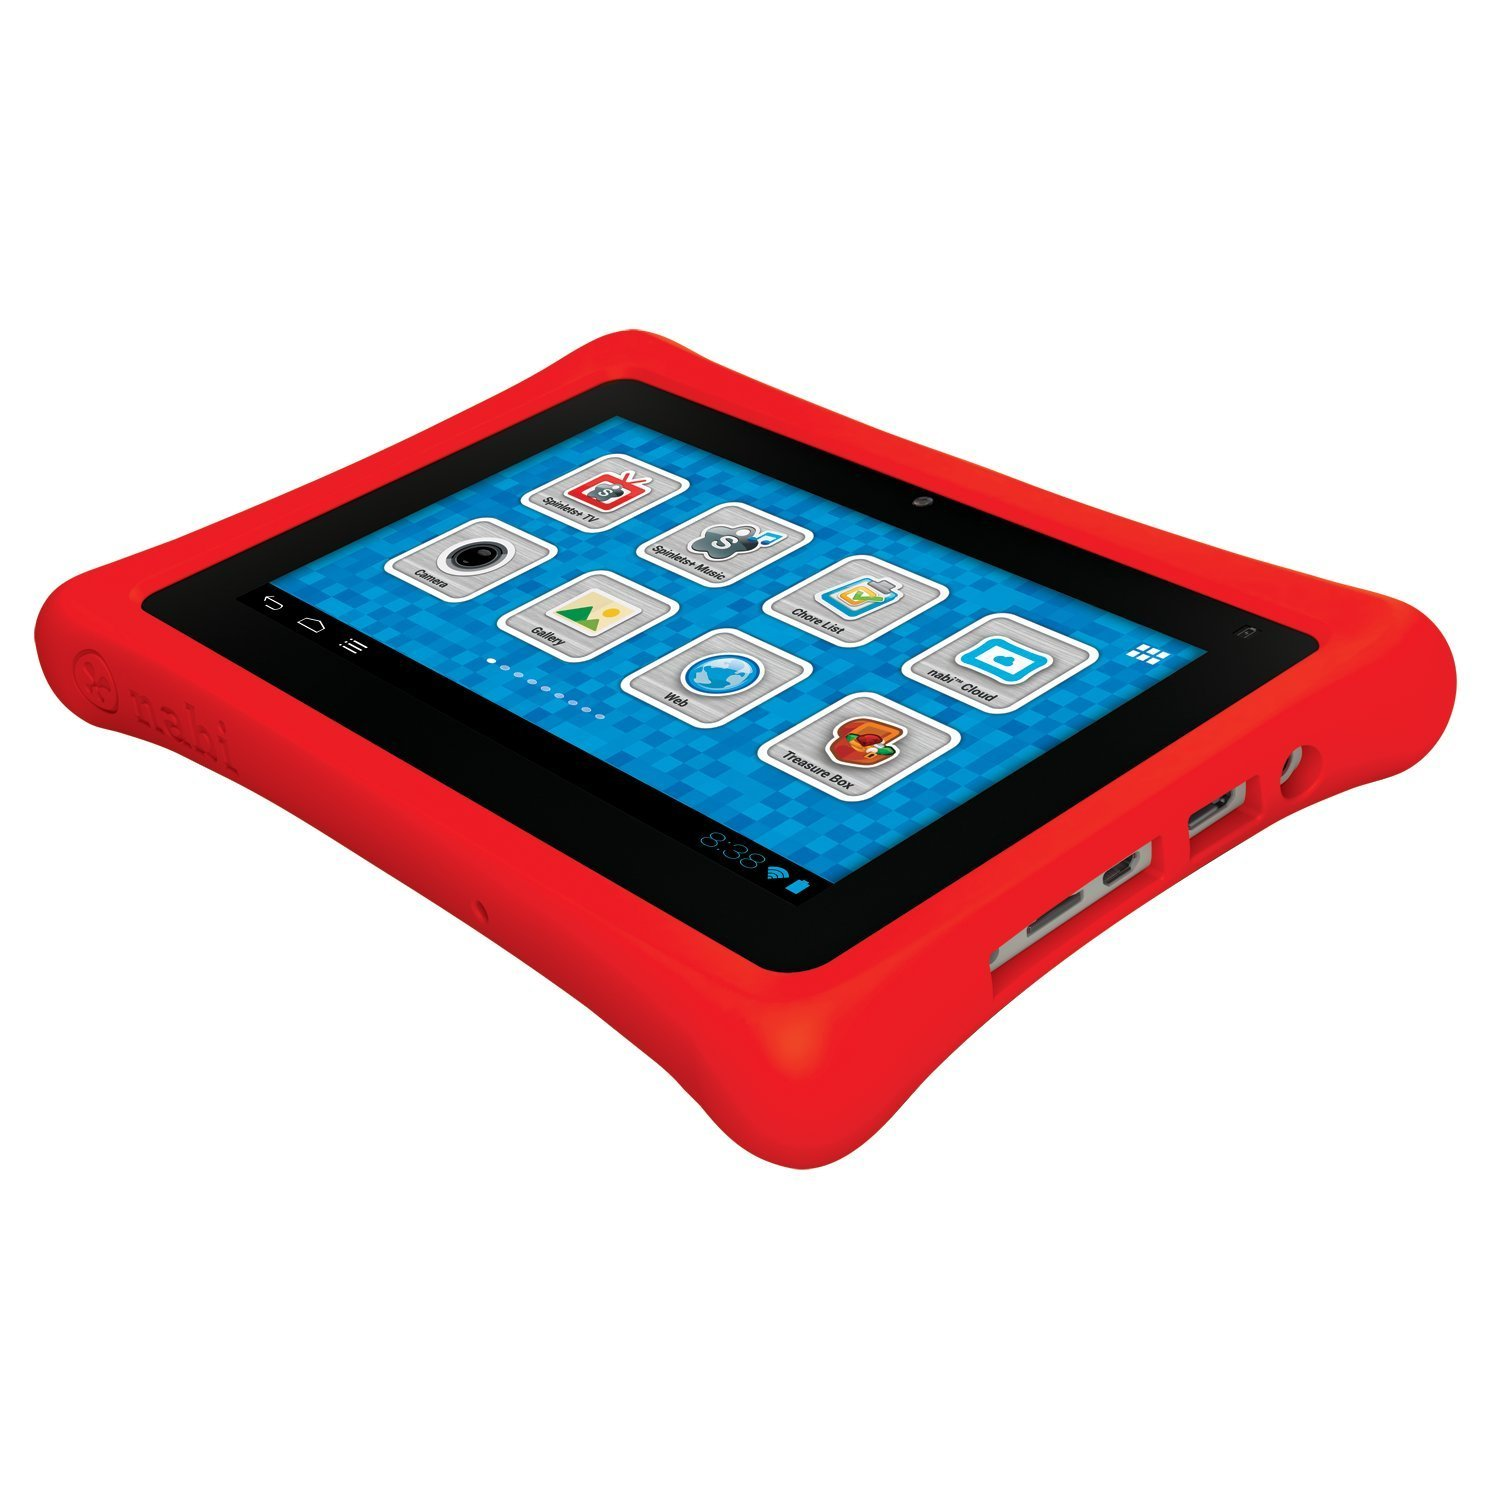 "NABI 2 7"" Kids Tablet 8GB Android 4 Black Red NABI2NV7A Check"